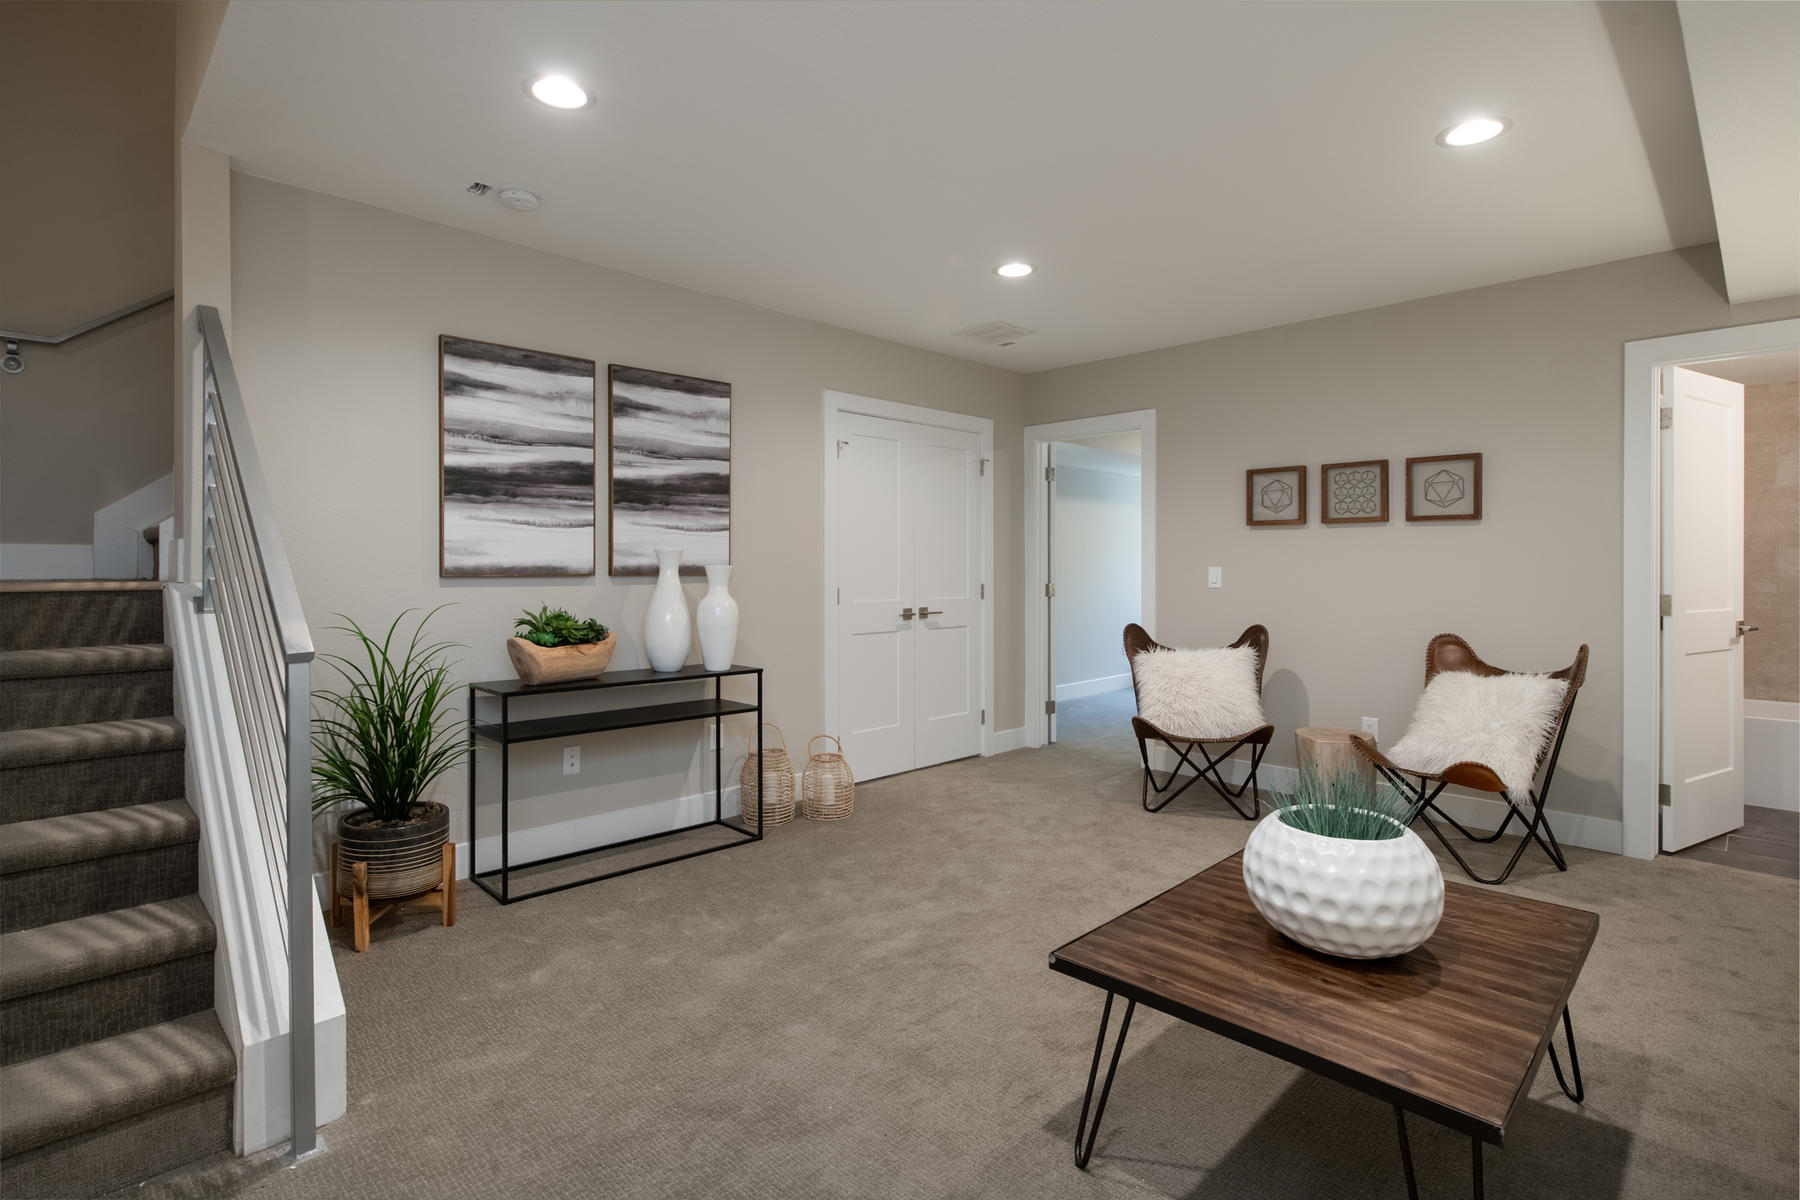 Additional photo for property listing at 790 Bellaire Street 790 Bellaire Street Denver, Colorado 80220 United States